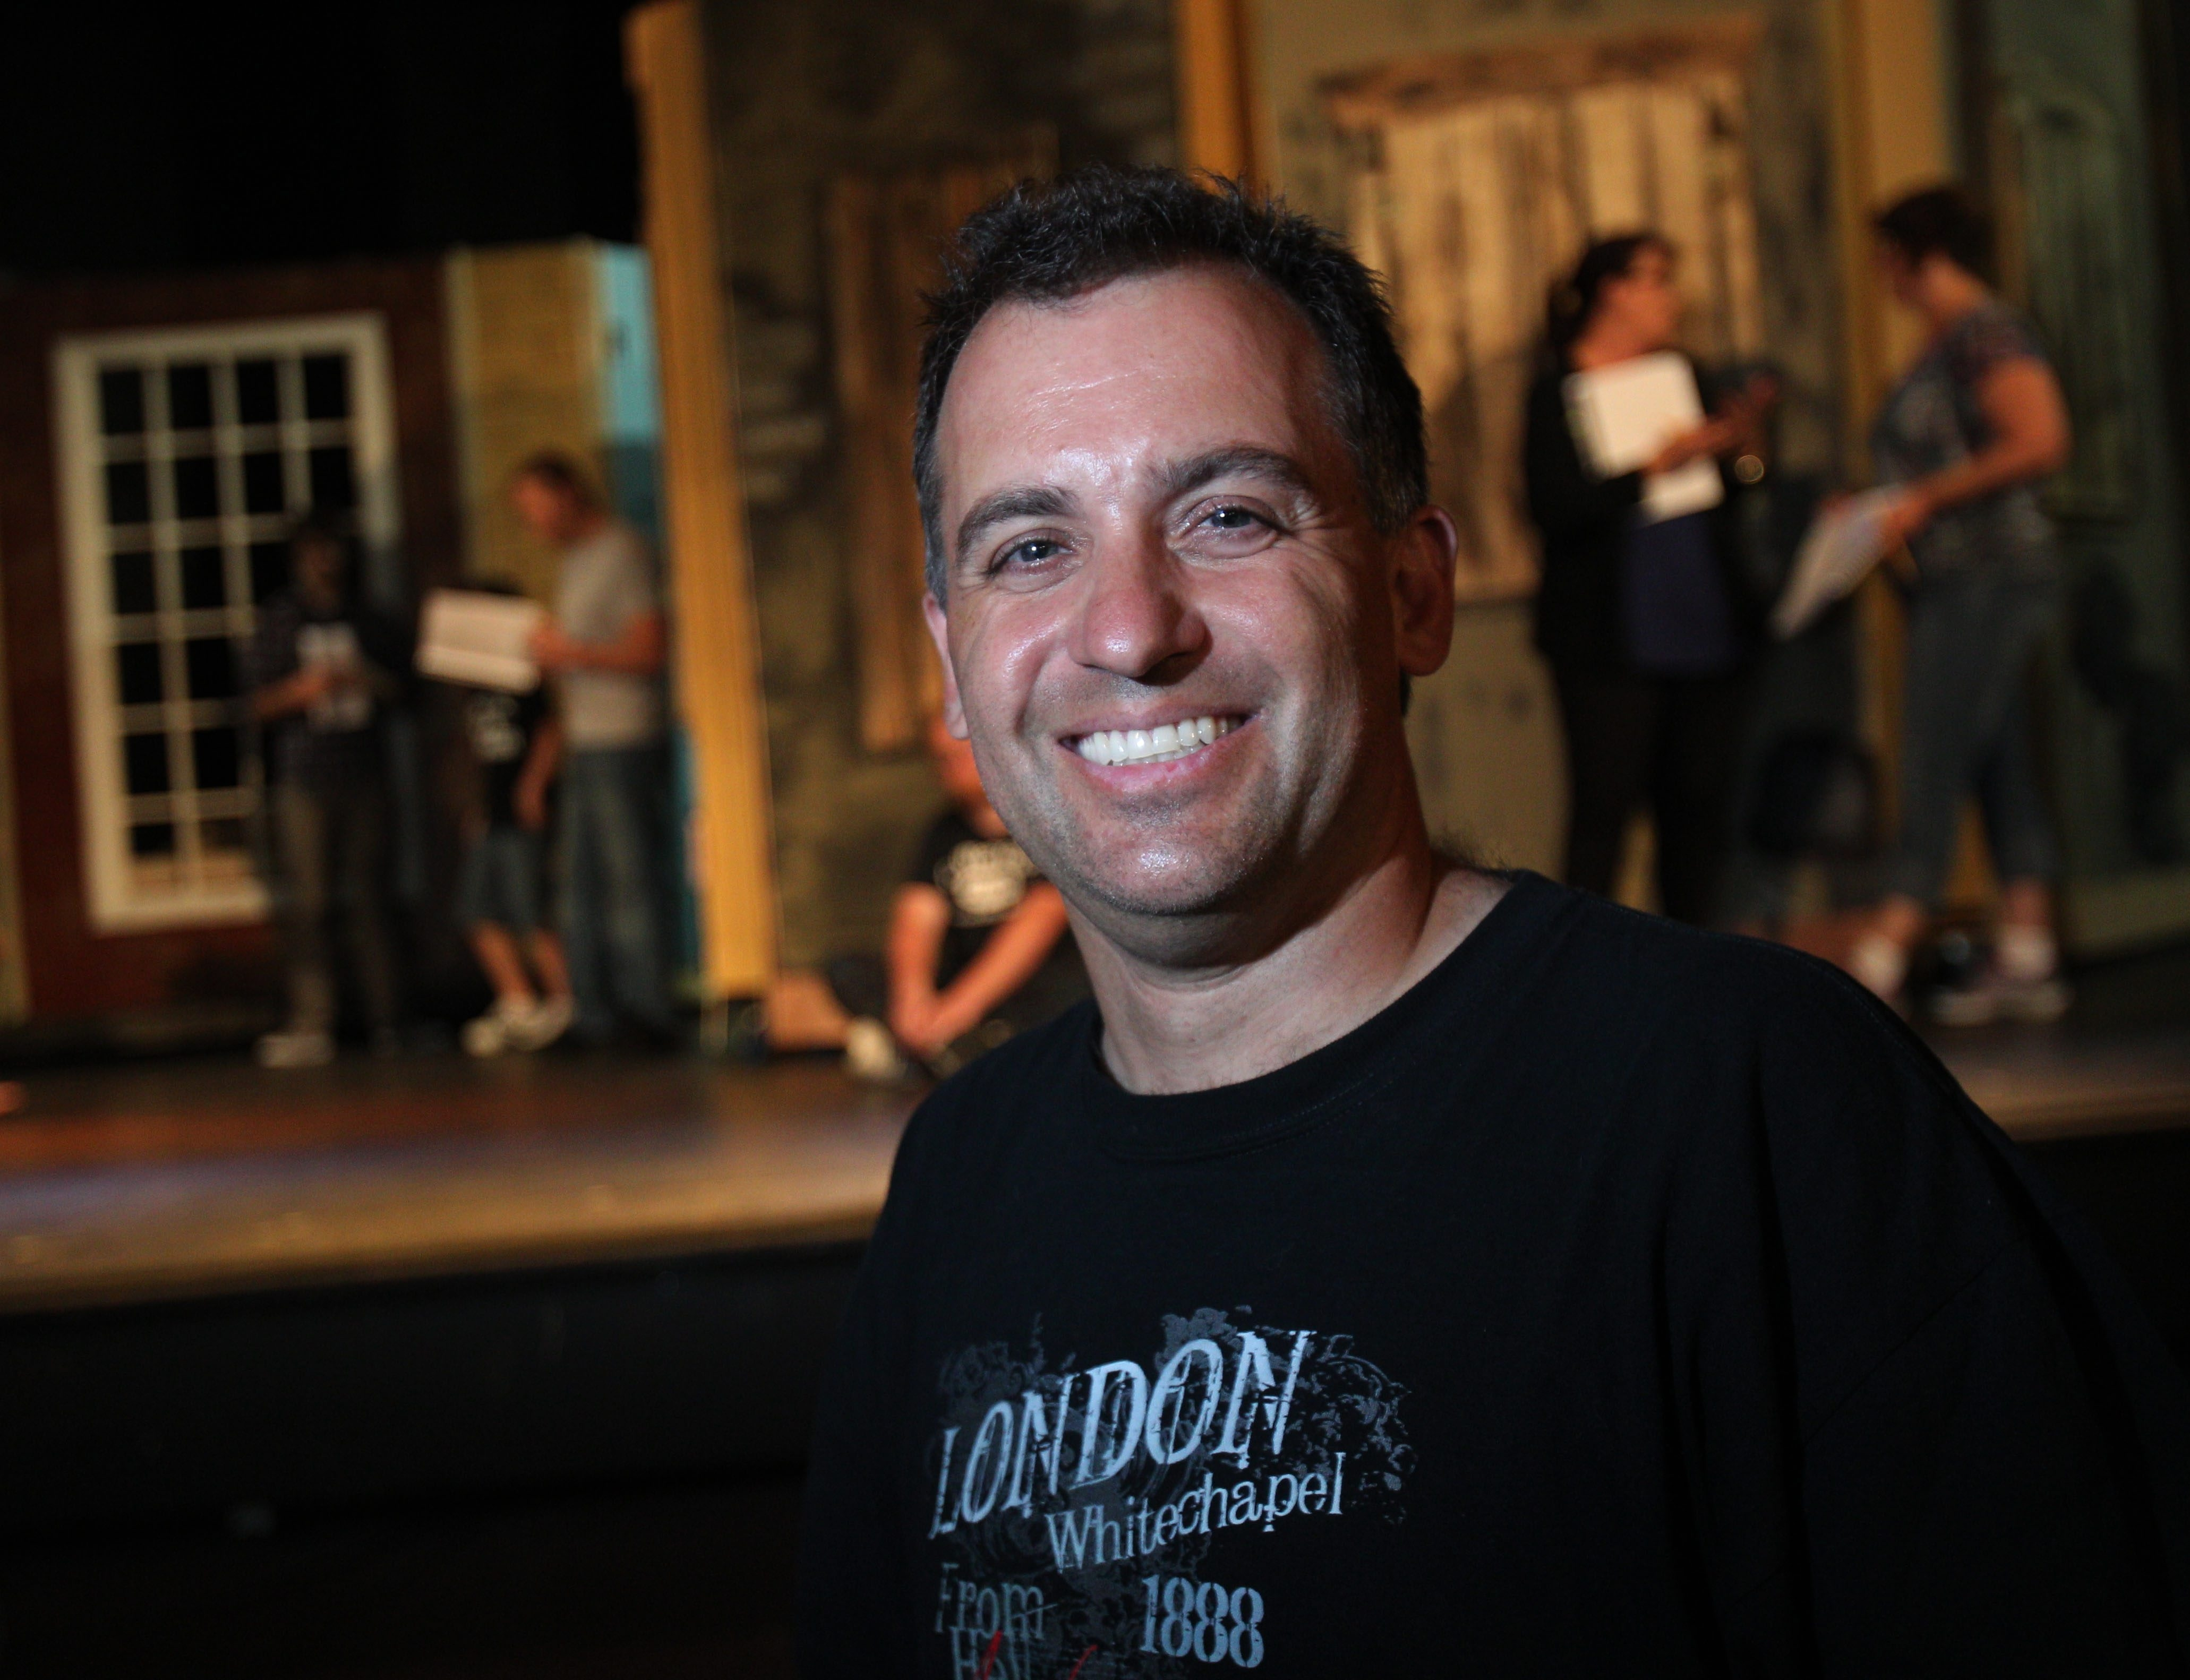 Jon May's first attempt as a playwright is based on the story of Jack the Ripper. He is also directing the Palace Theatre production of the play.